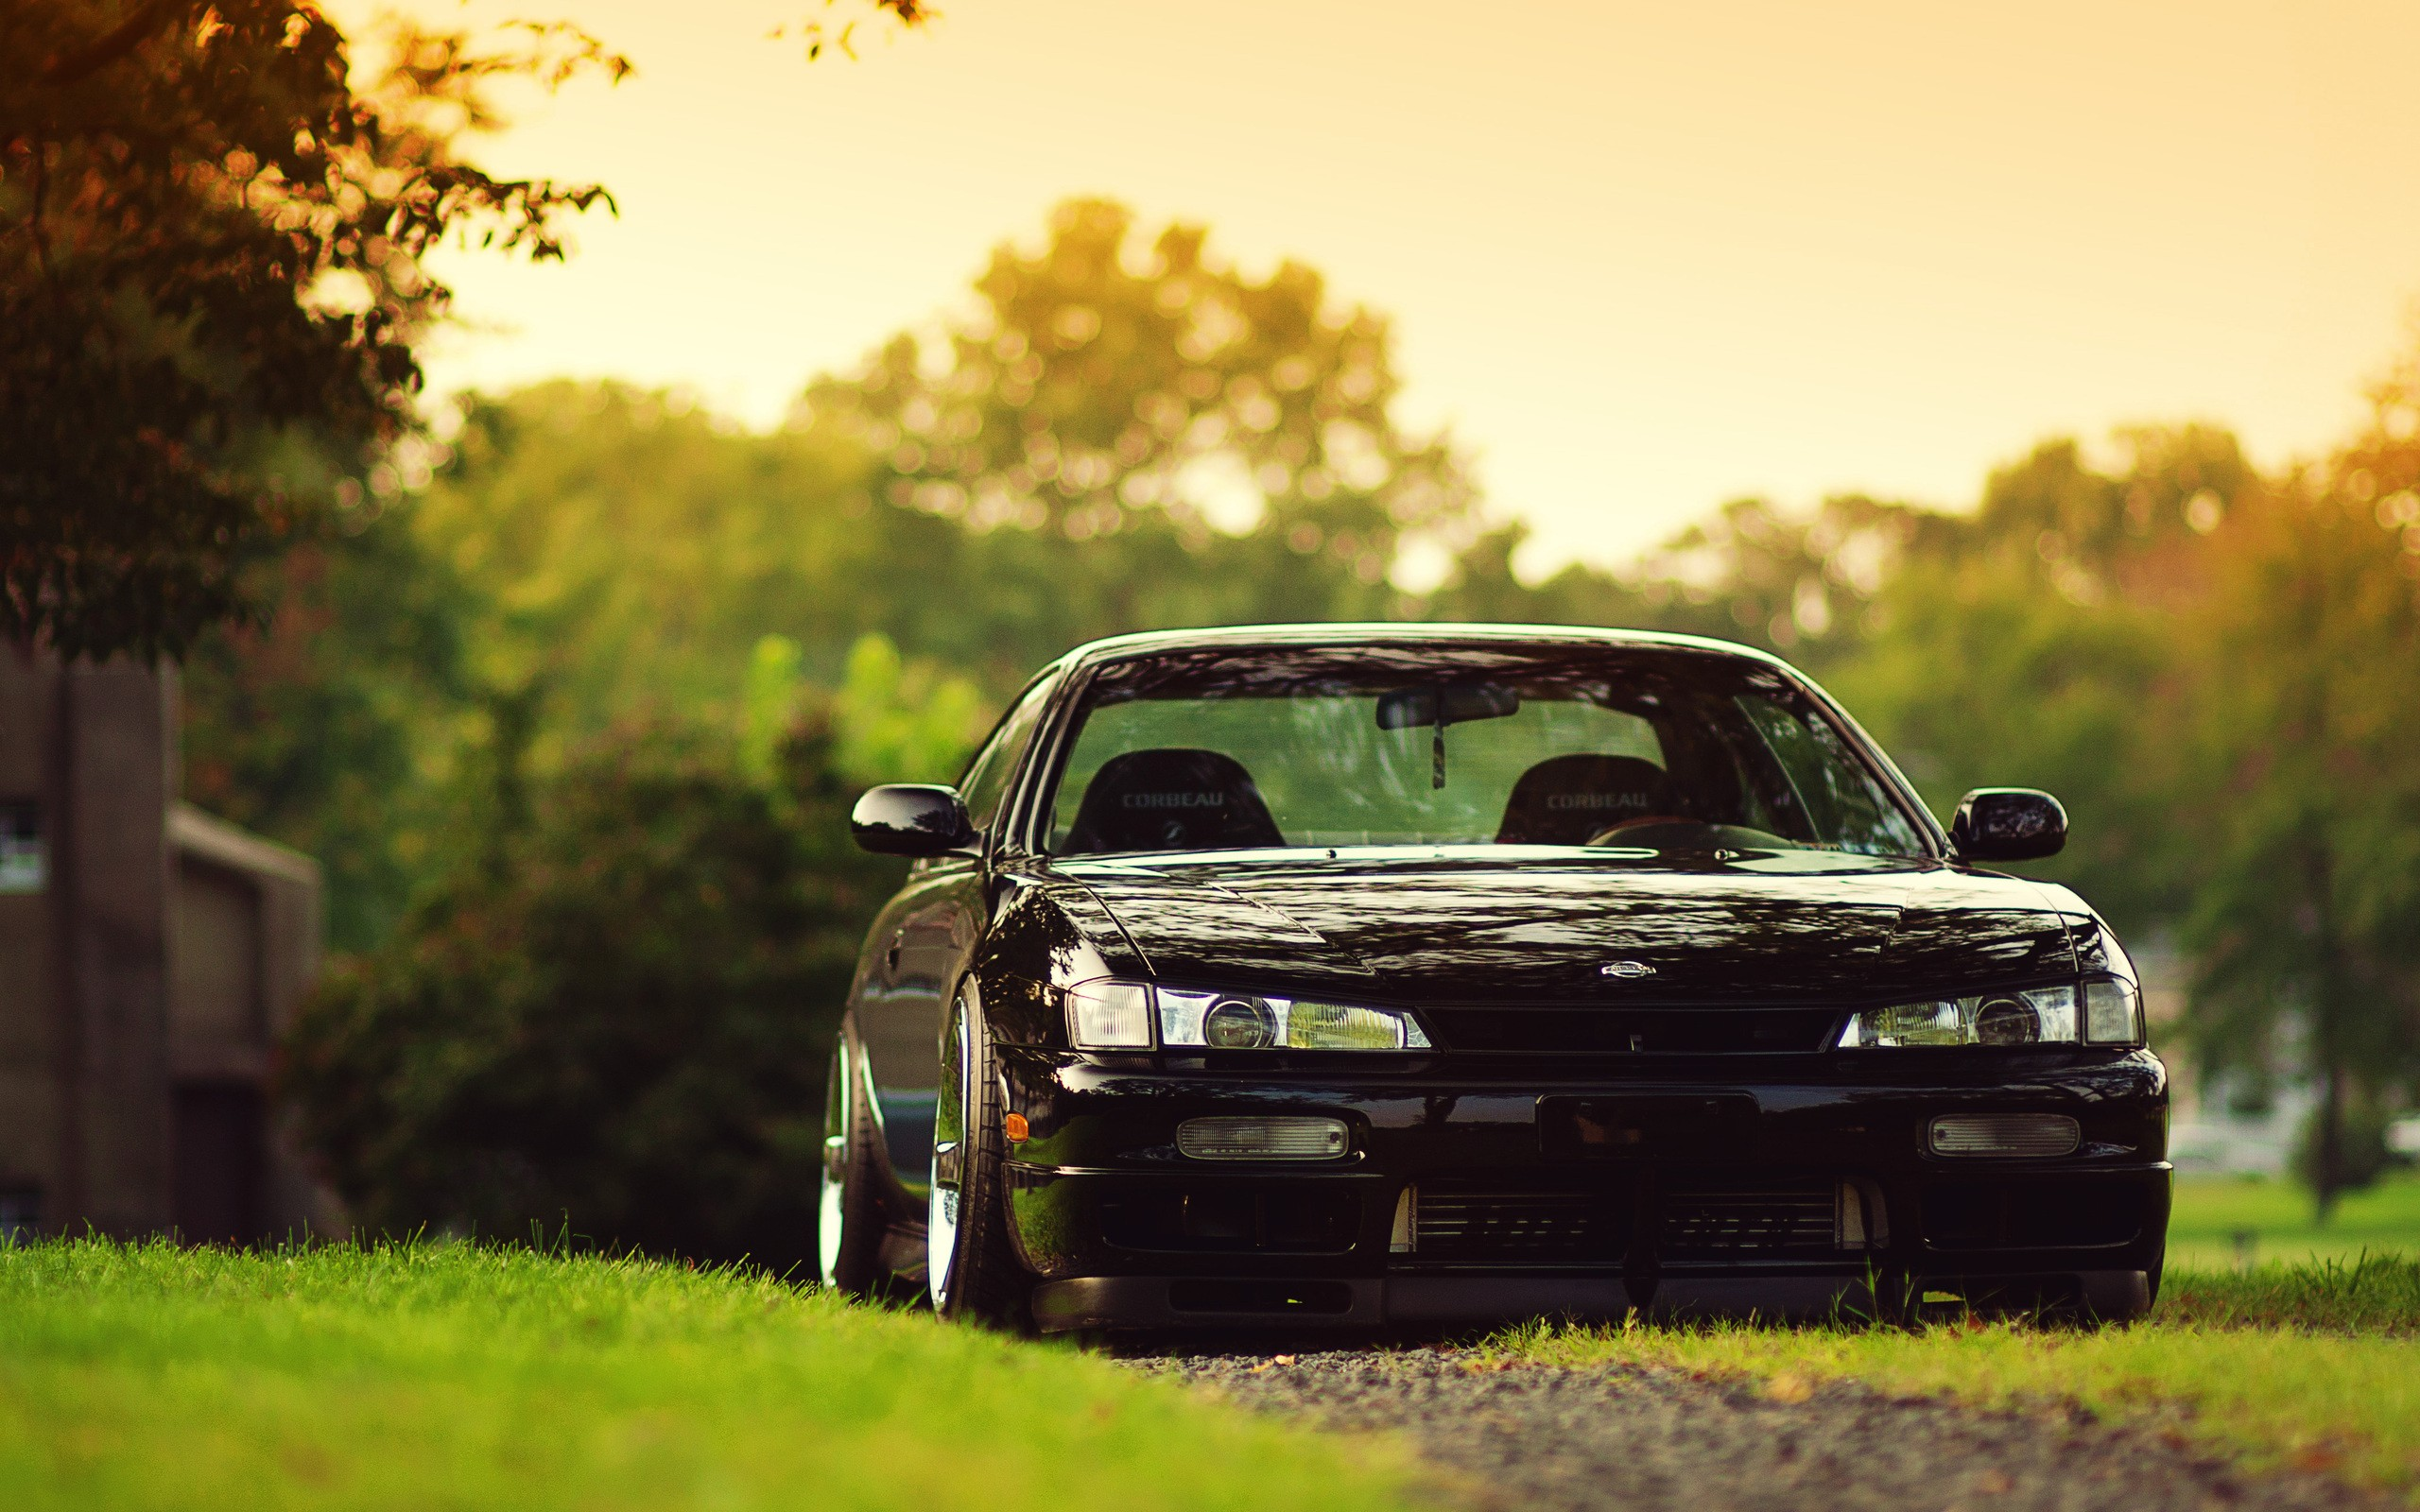 2560x1600 - Nissan Silvia S14 Wallpapers 27